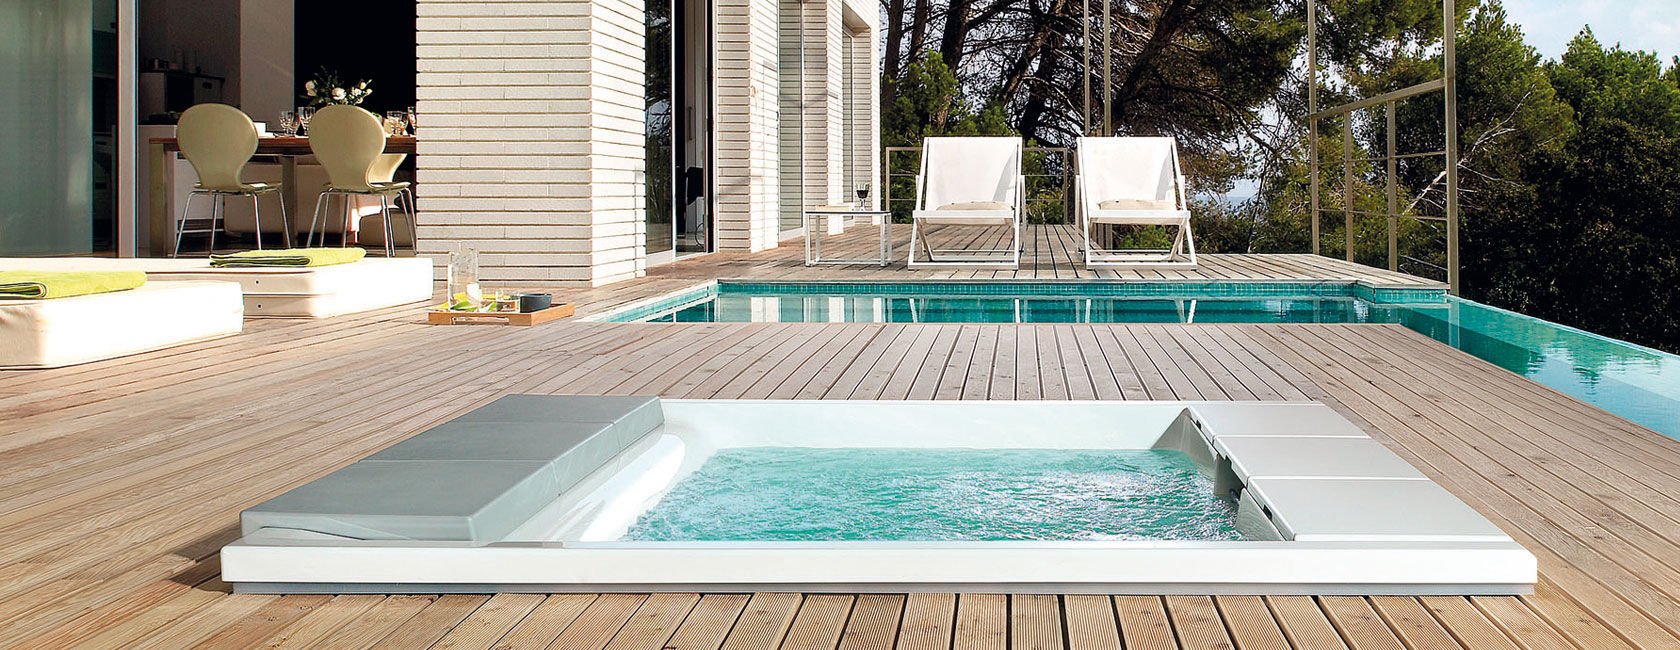 Built-In Hot Tubs: Provides Luxury and Extra Comfort | HomesFeed